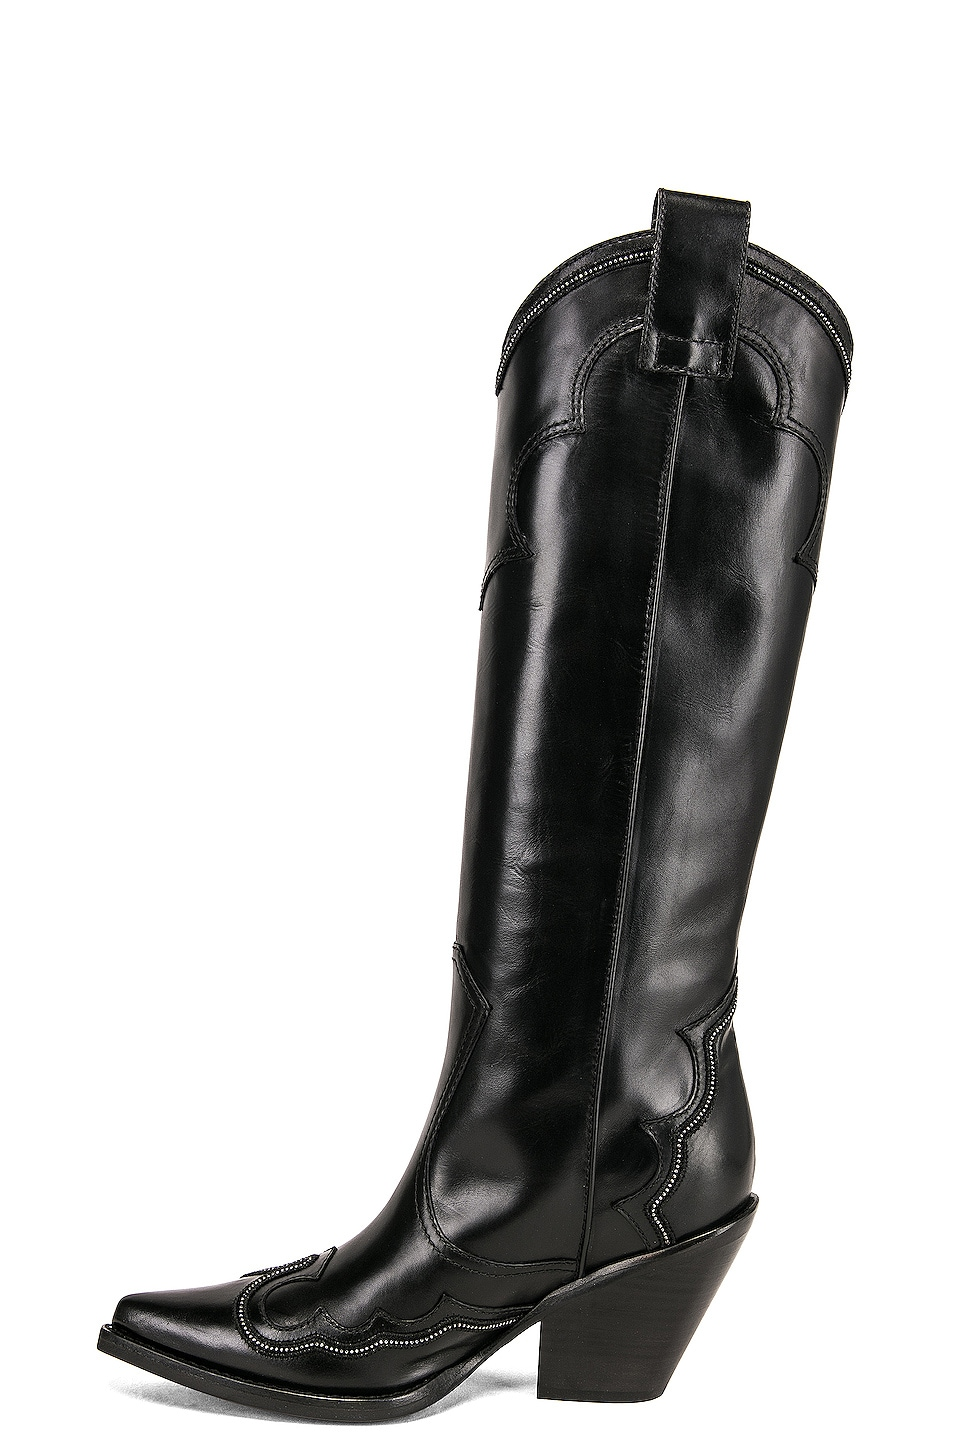 Image 5 of Redemption Cowboy Boot in Black